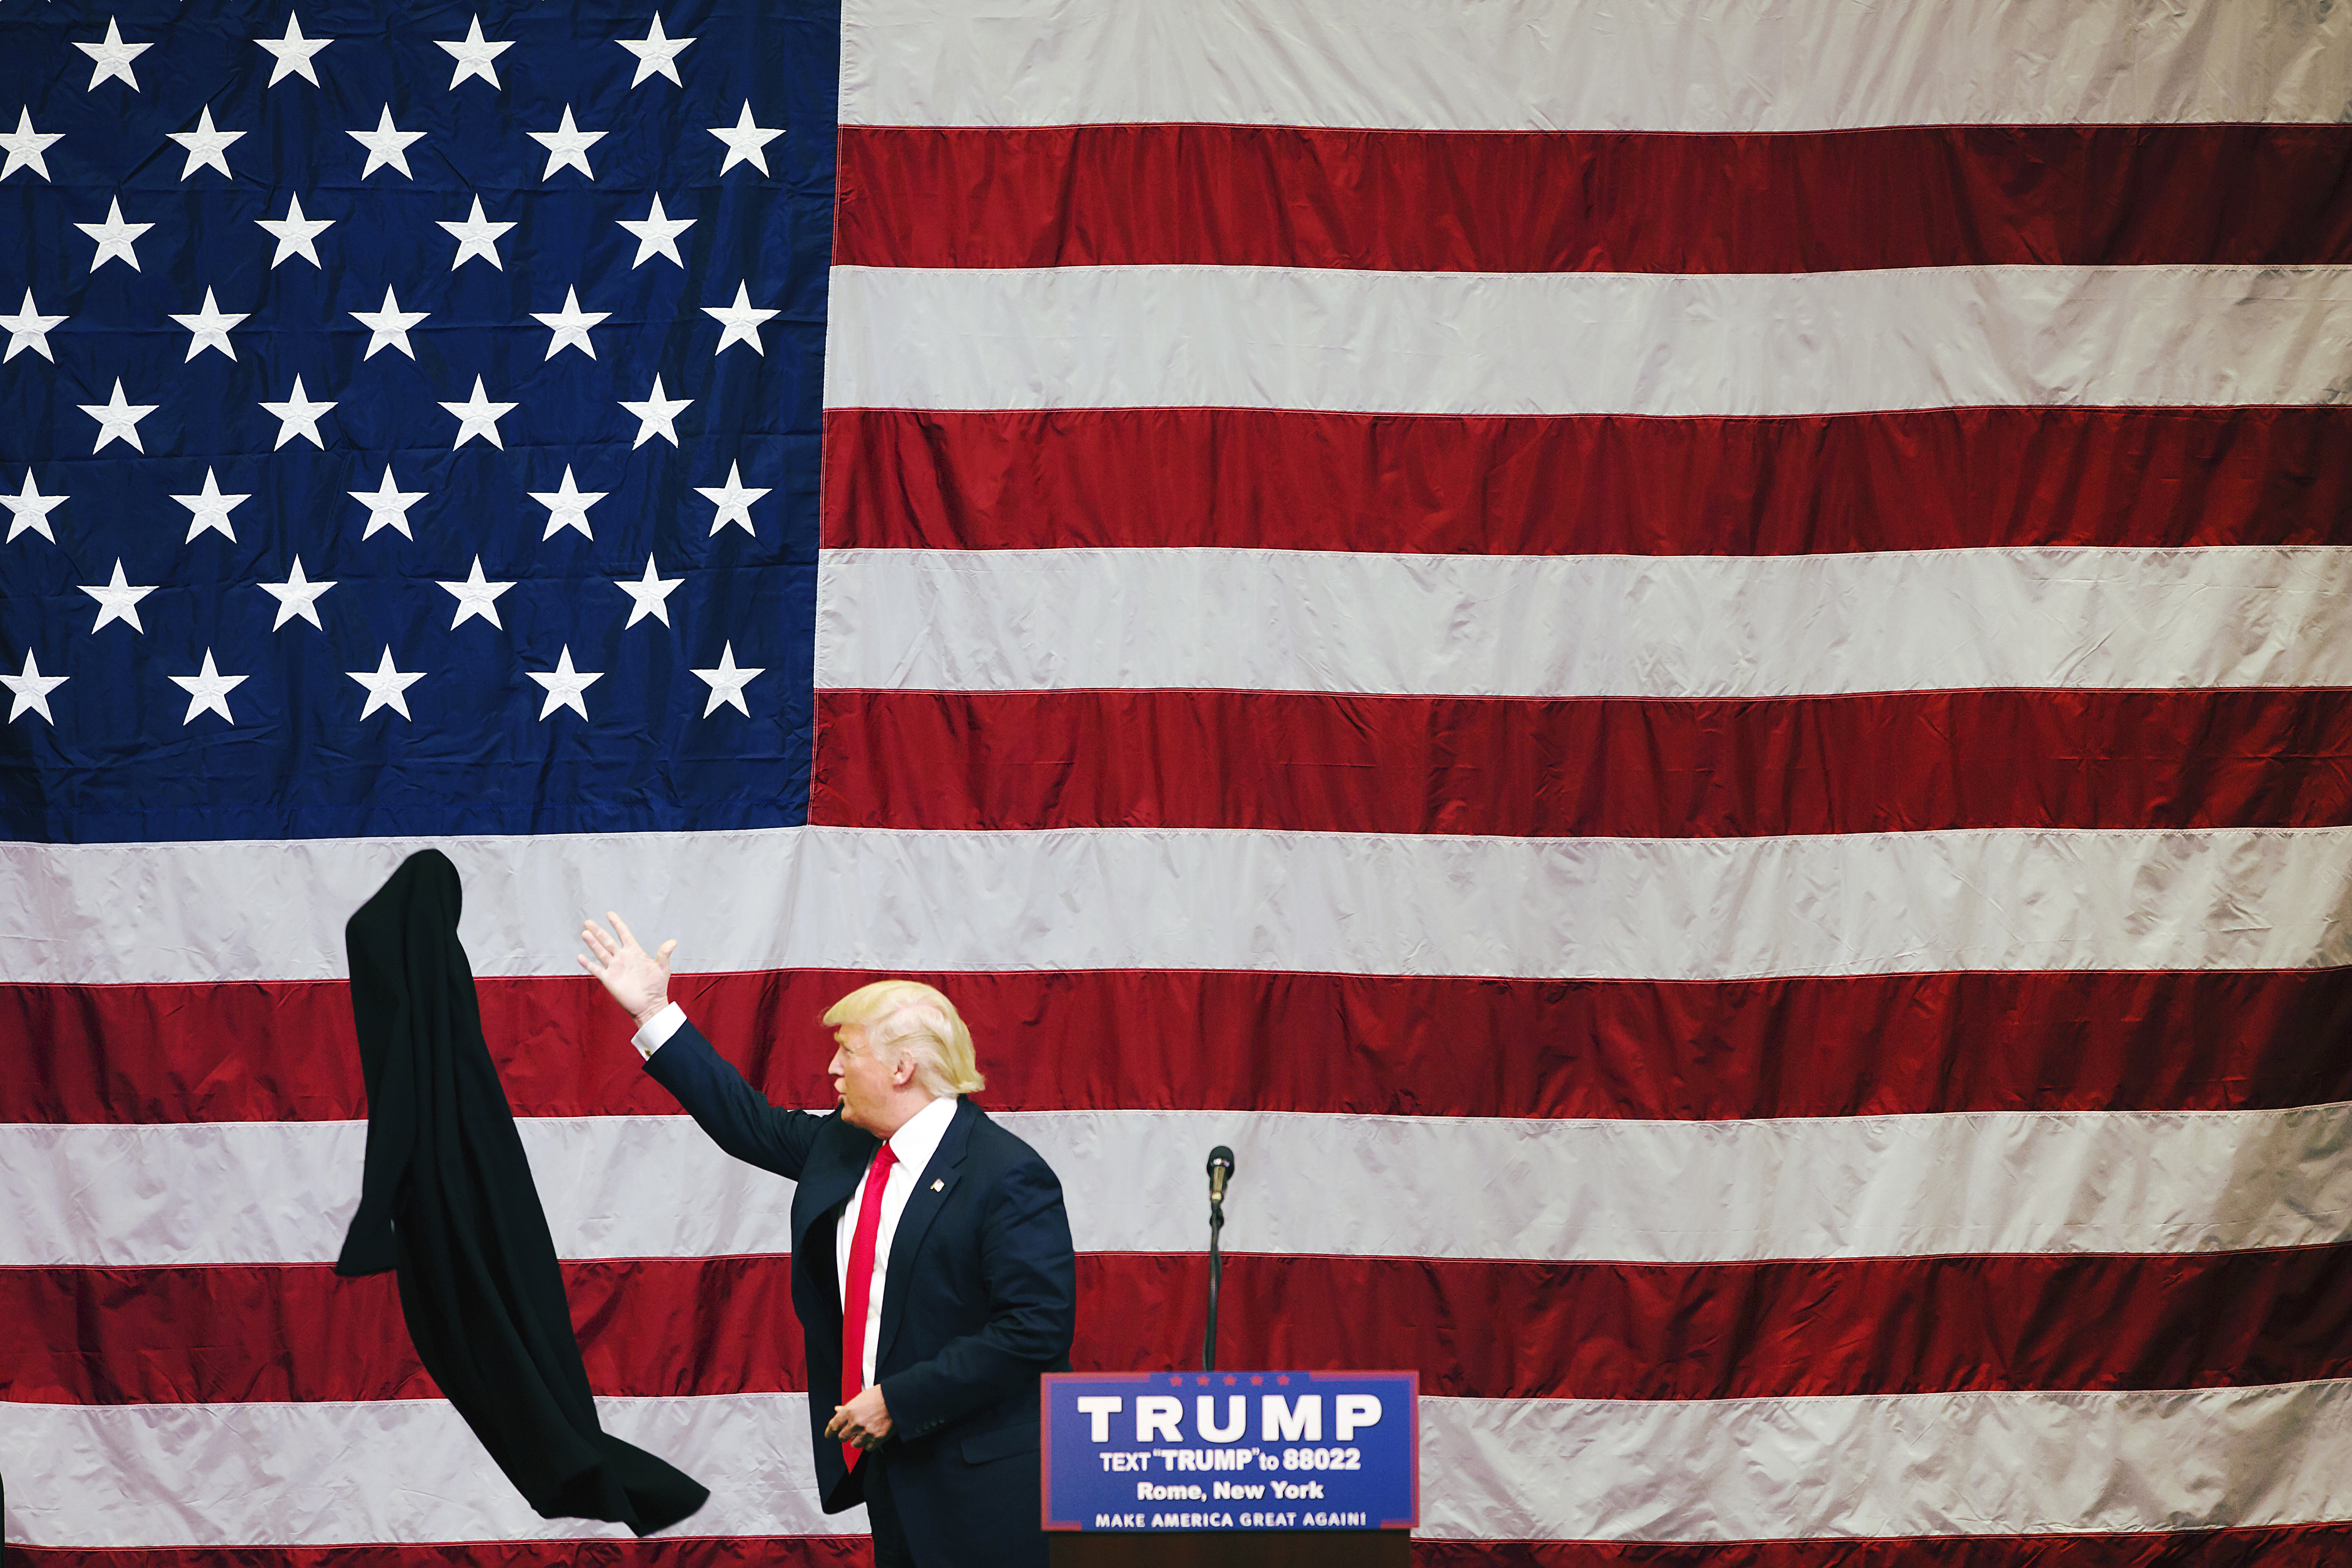 Donald Trump tosses his coat aside during a fly-in campaign stop at the Griffiss International Airport in Rome, N.Y., on April 12, 2016.